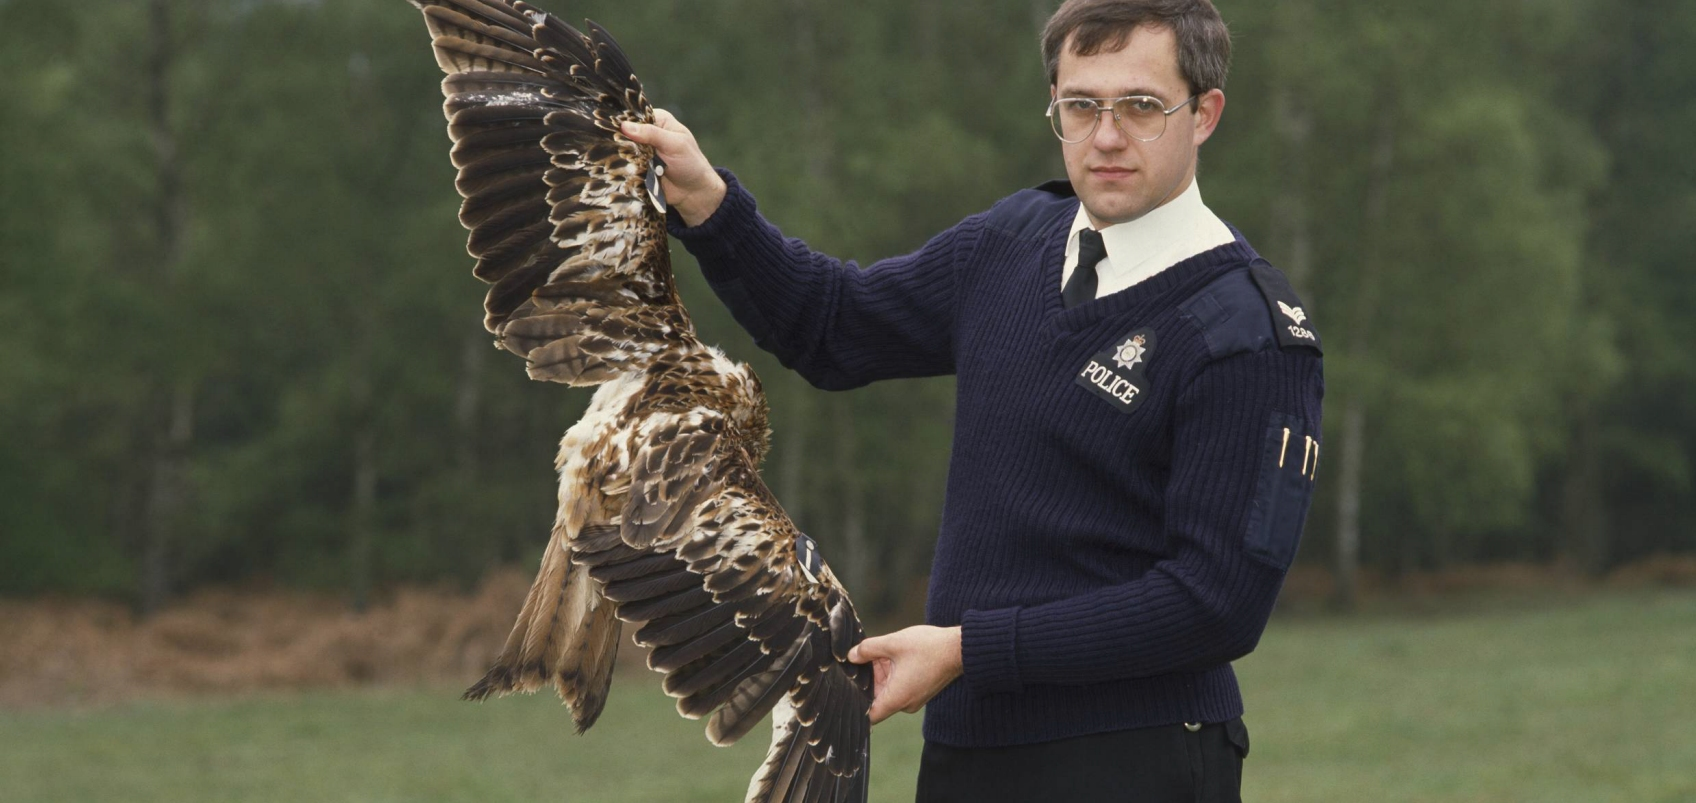 An RSPCA officer holds up a dead red kite